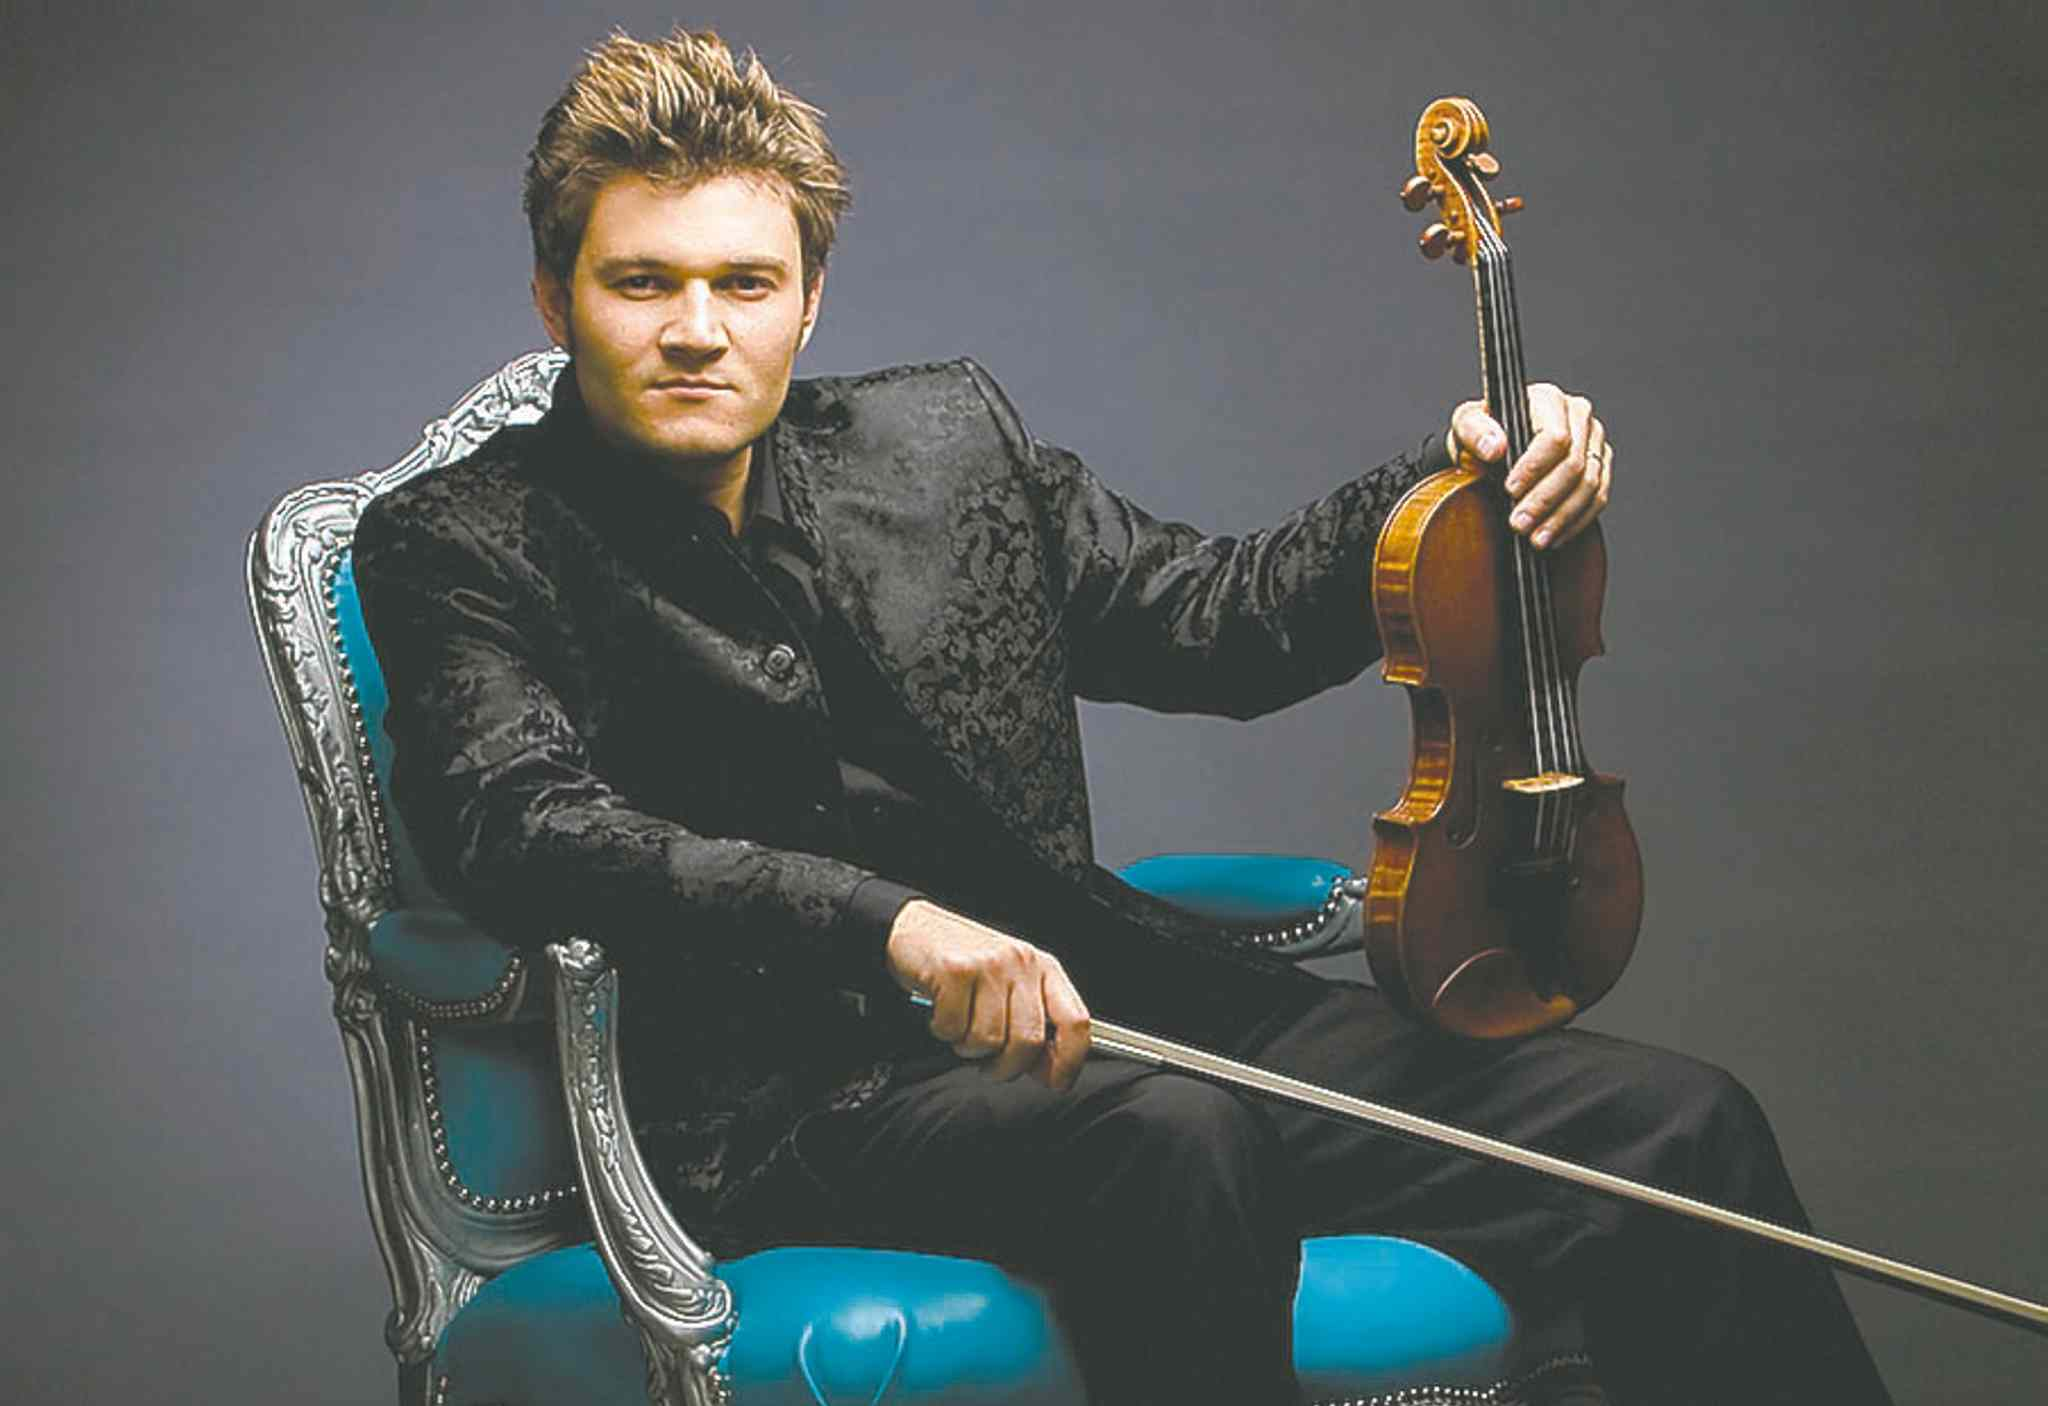 Supplied PhotoAlexandre da Costa will appear as part of this season�s Vituosi Concerts� series.